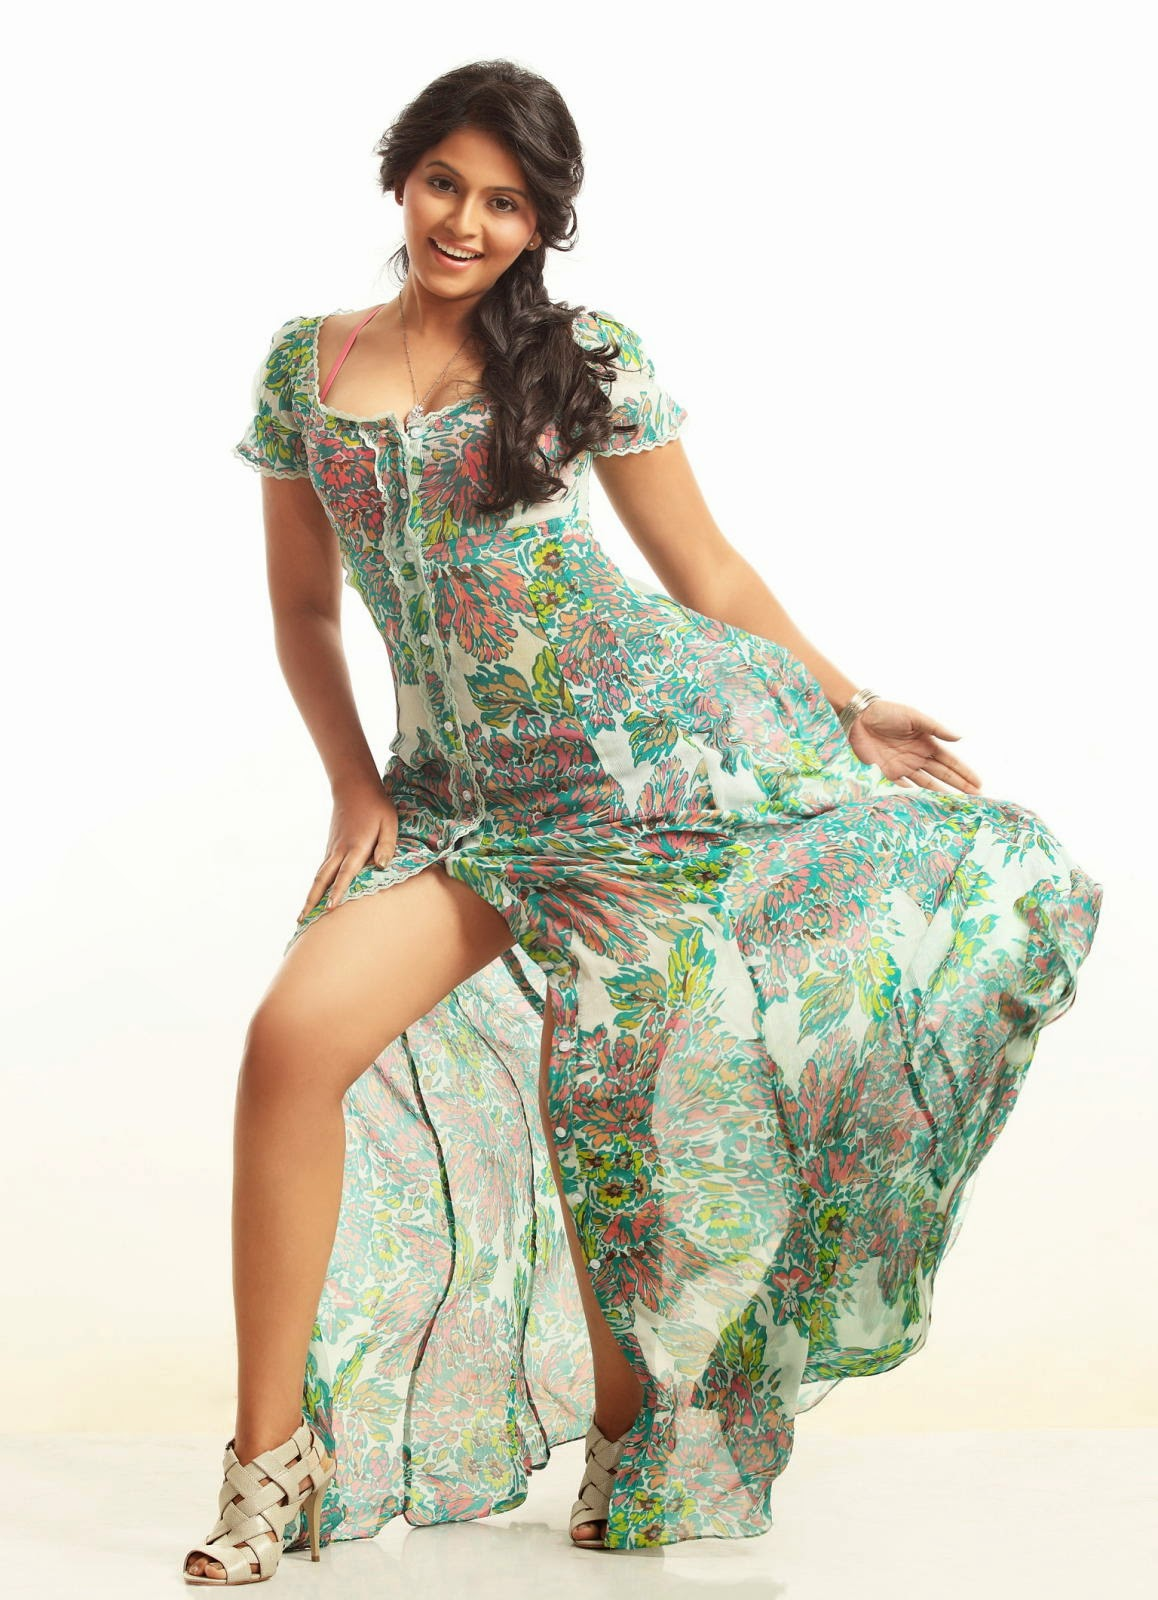 Anjali Hot Photo Shoot Stills